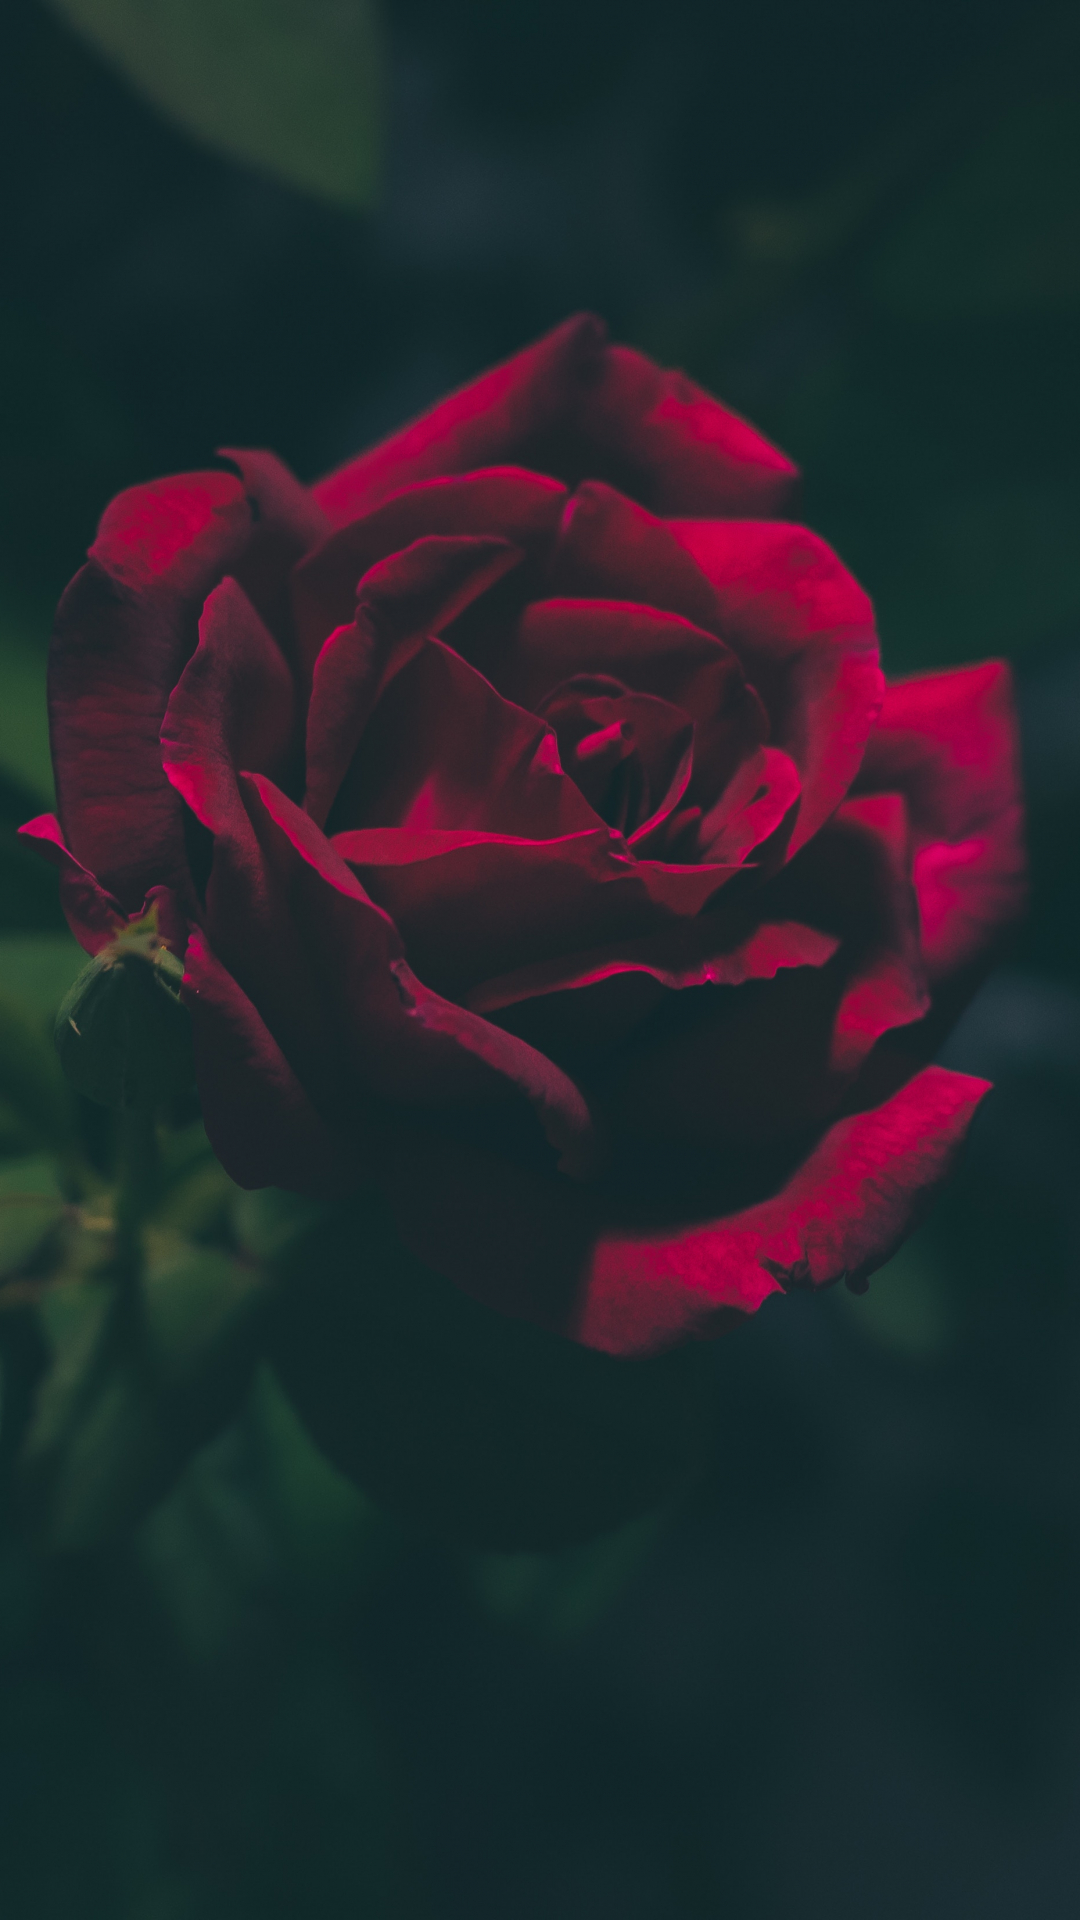 Blood-Red Rose iPhone Wallpaper - iDrop News